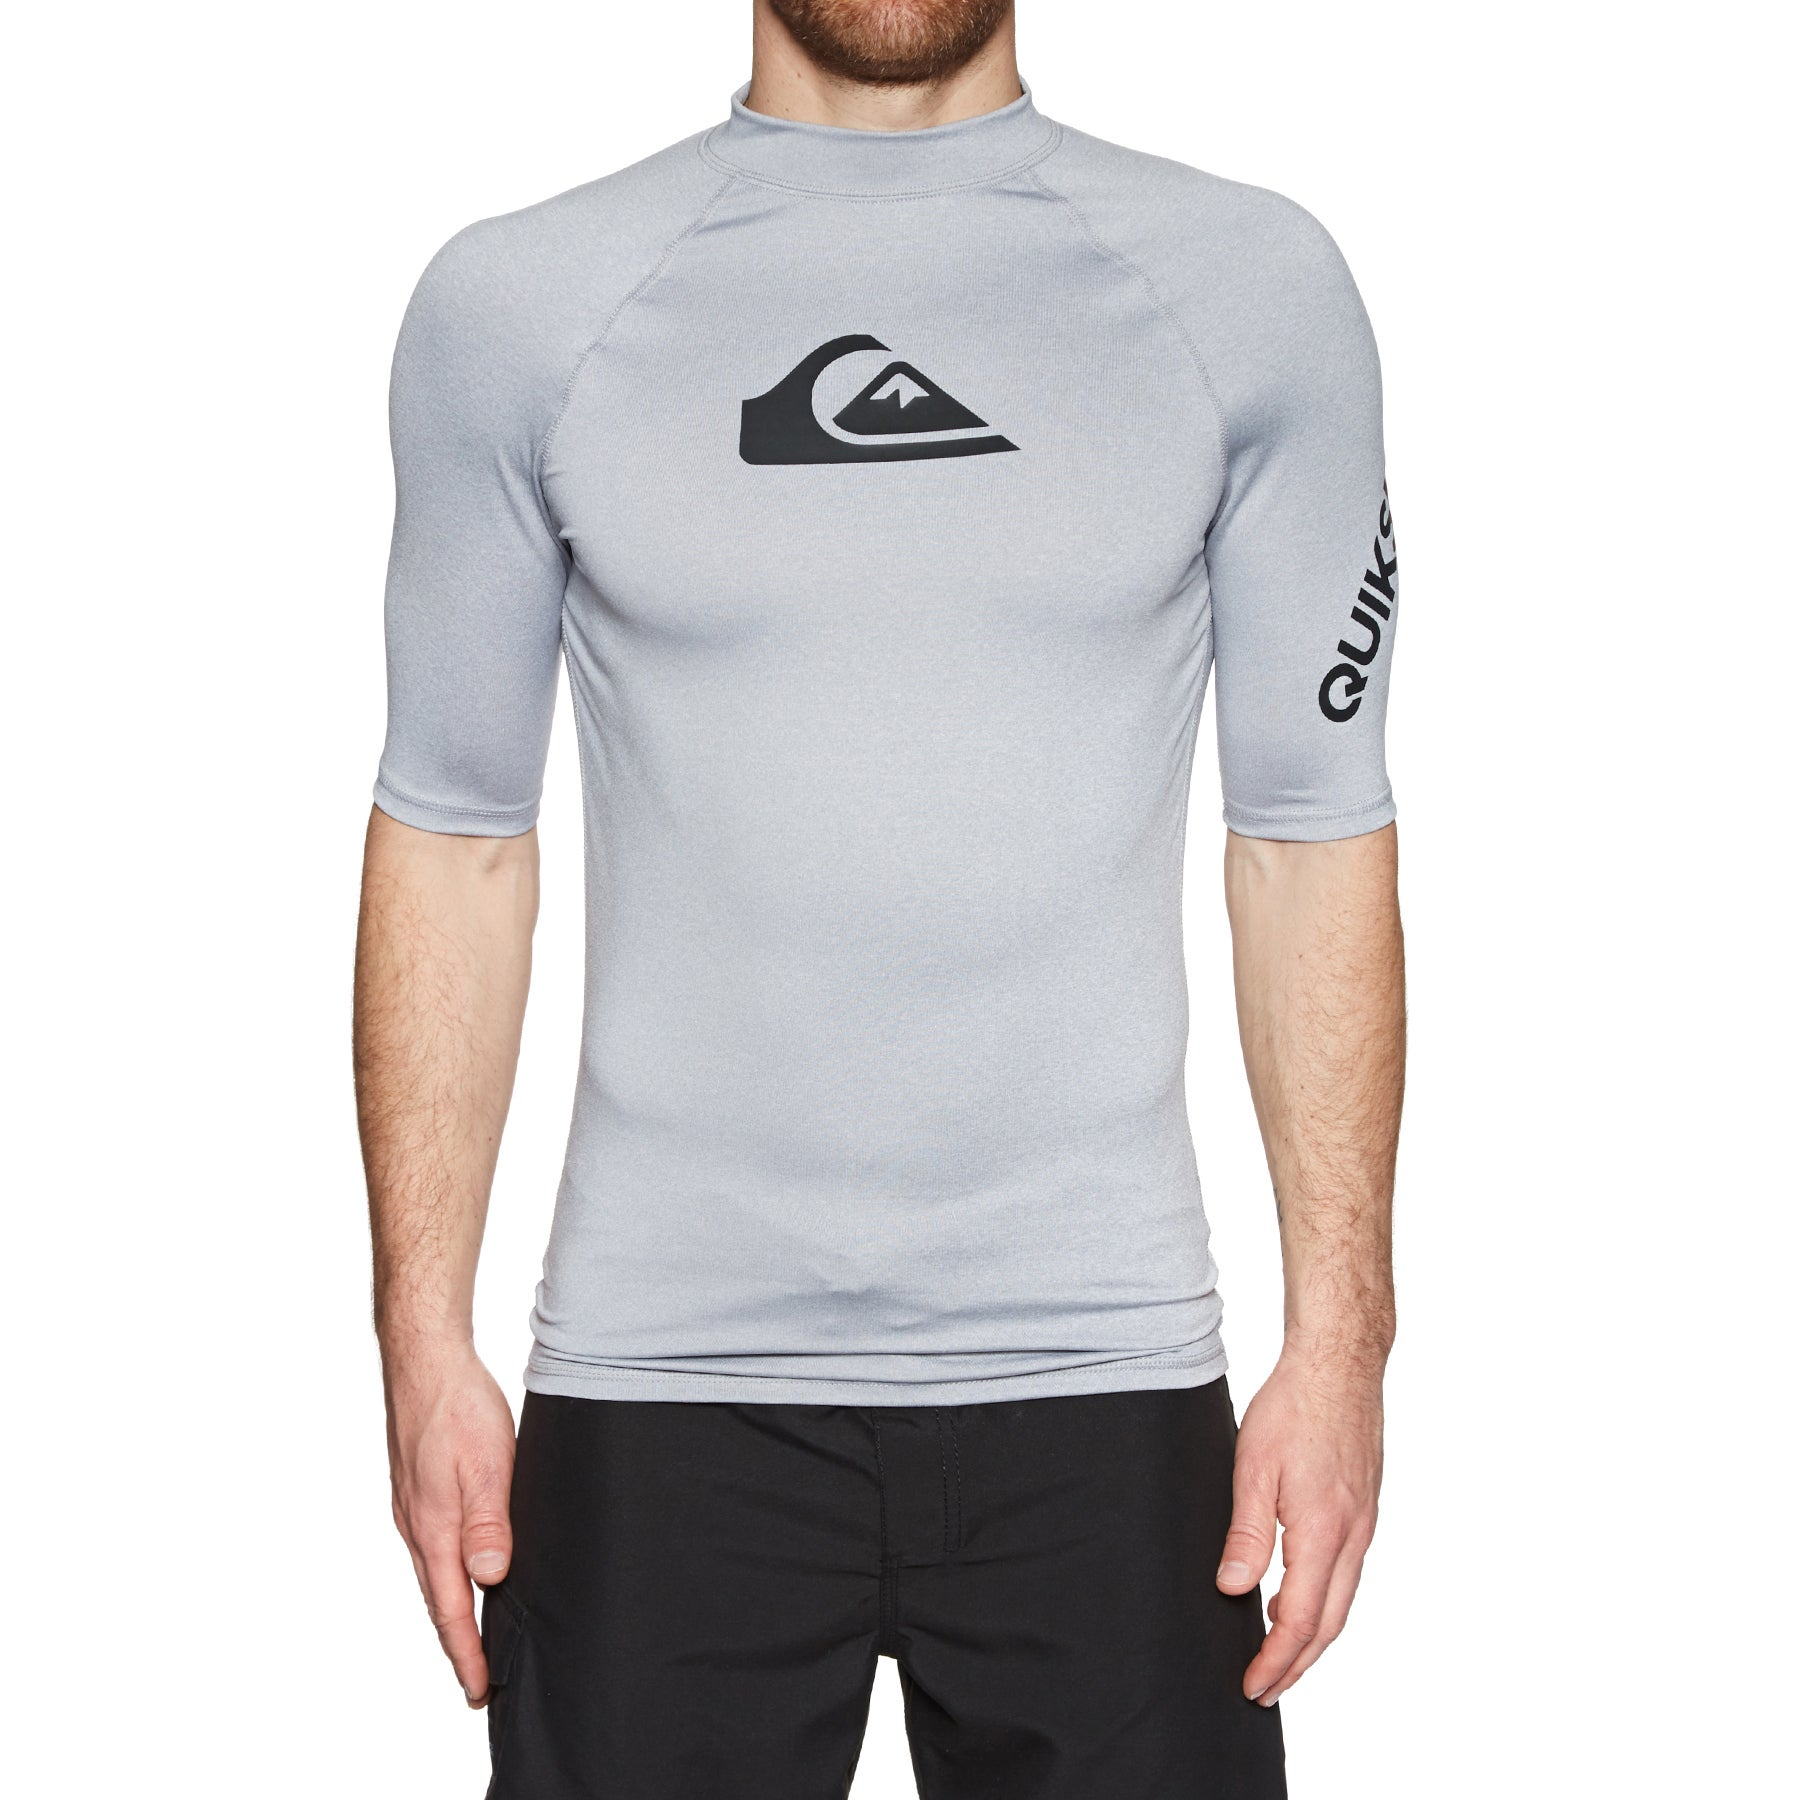 Quiksilver All Time Short Sleeve UPF 50 Rash Vest - Light Grey Heather